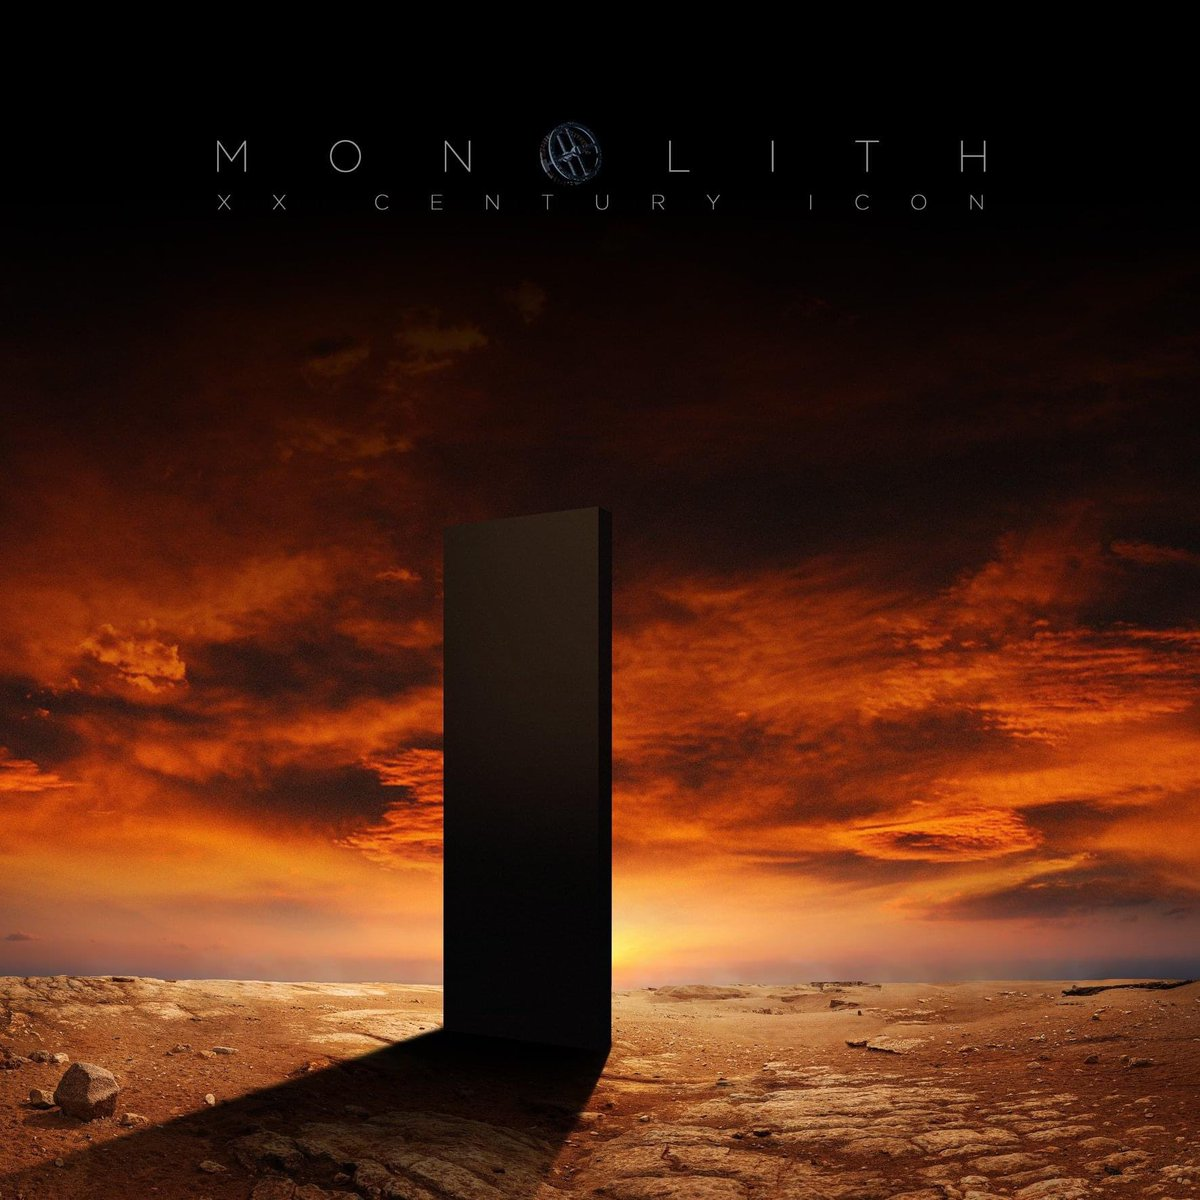 javier naval on twitter the monolith 2001 a space odyssey xx century icon icon monolith 2001aspaceodyssey kubrick a space odyssey xx century icon icon